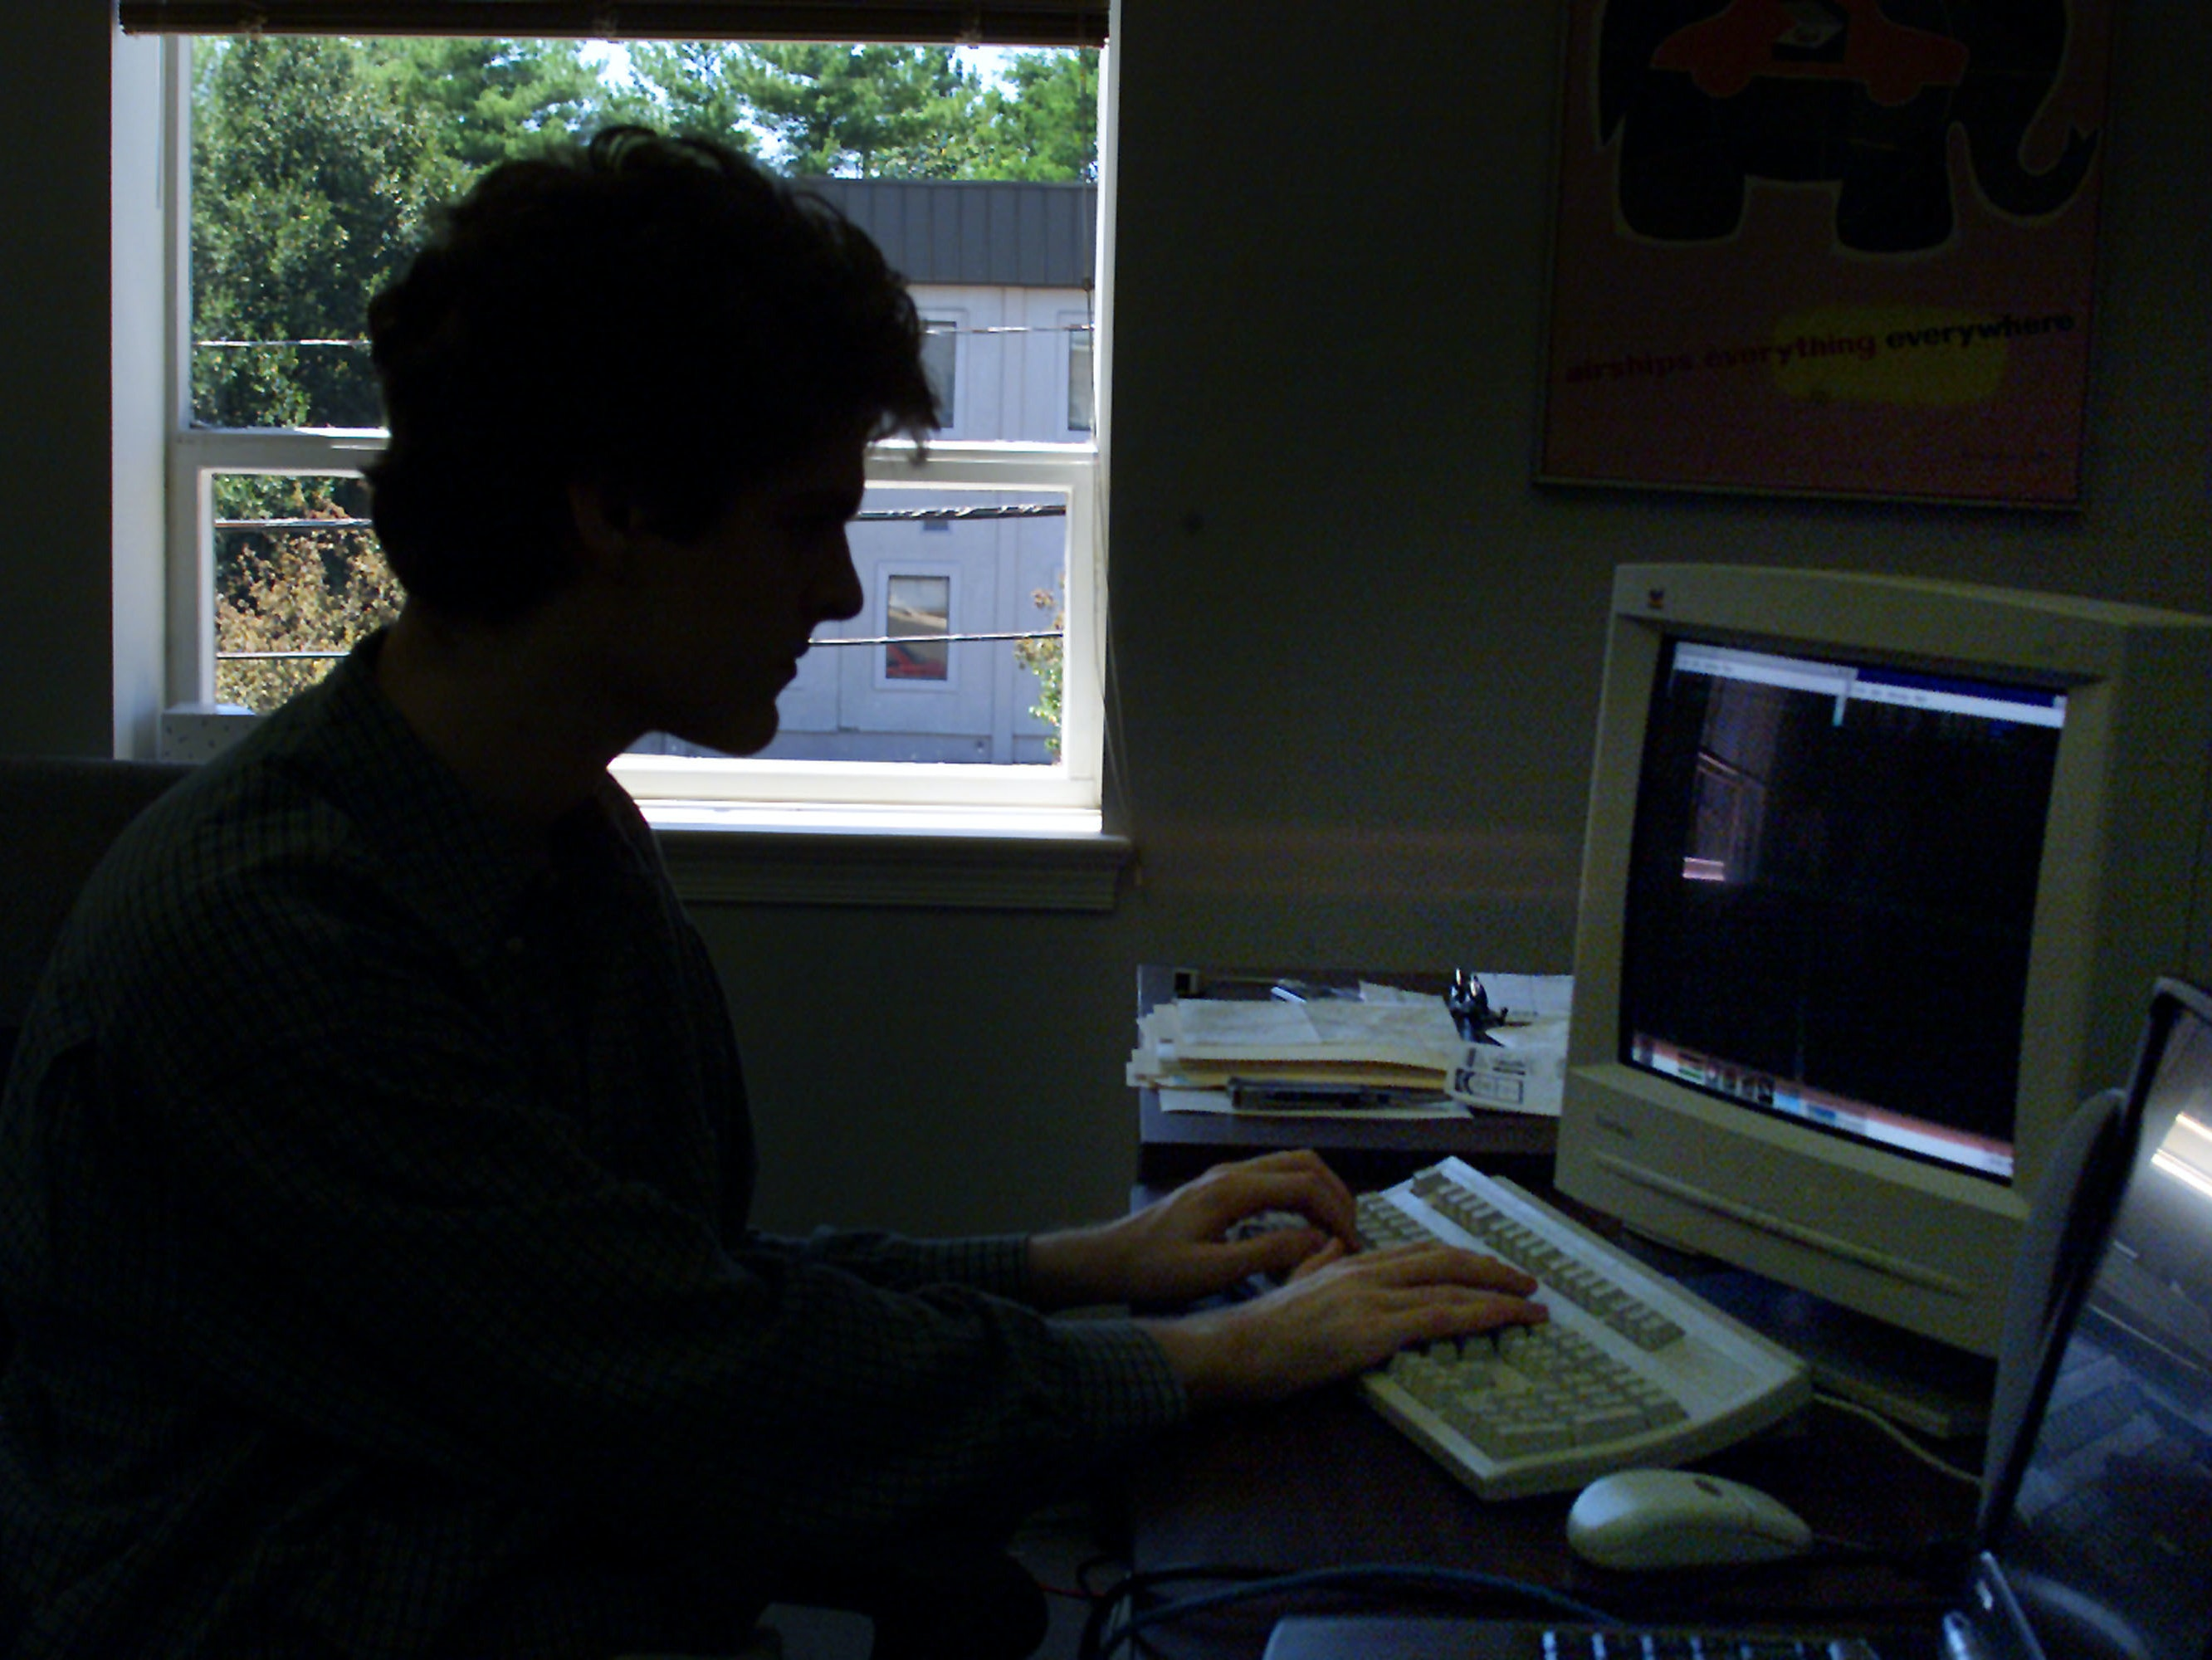 391546 04: Computer whiz kid Sean Ward works in his office July 6, 2001 in Alexandria, VA. Ward developed software that can give a song a unique digital fingerprint that will identify music quickly. When Napster goes back online later this summer, the song-sharing software will include Ward''s new fingerprint technology to prevent users from swapping copyrighted songs. (Photo by Mark Wilson/Getty Images)